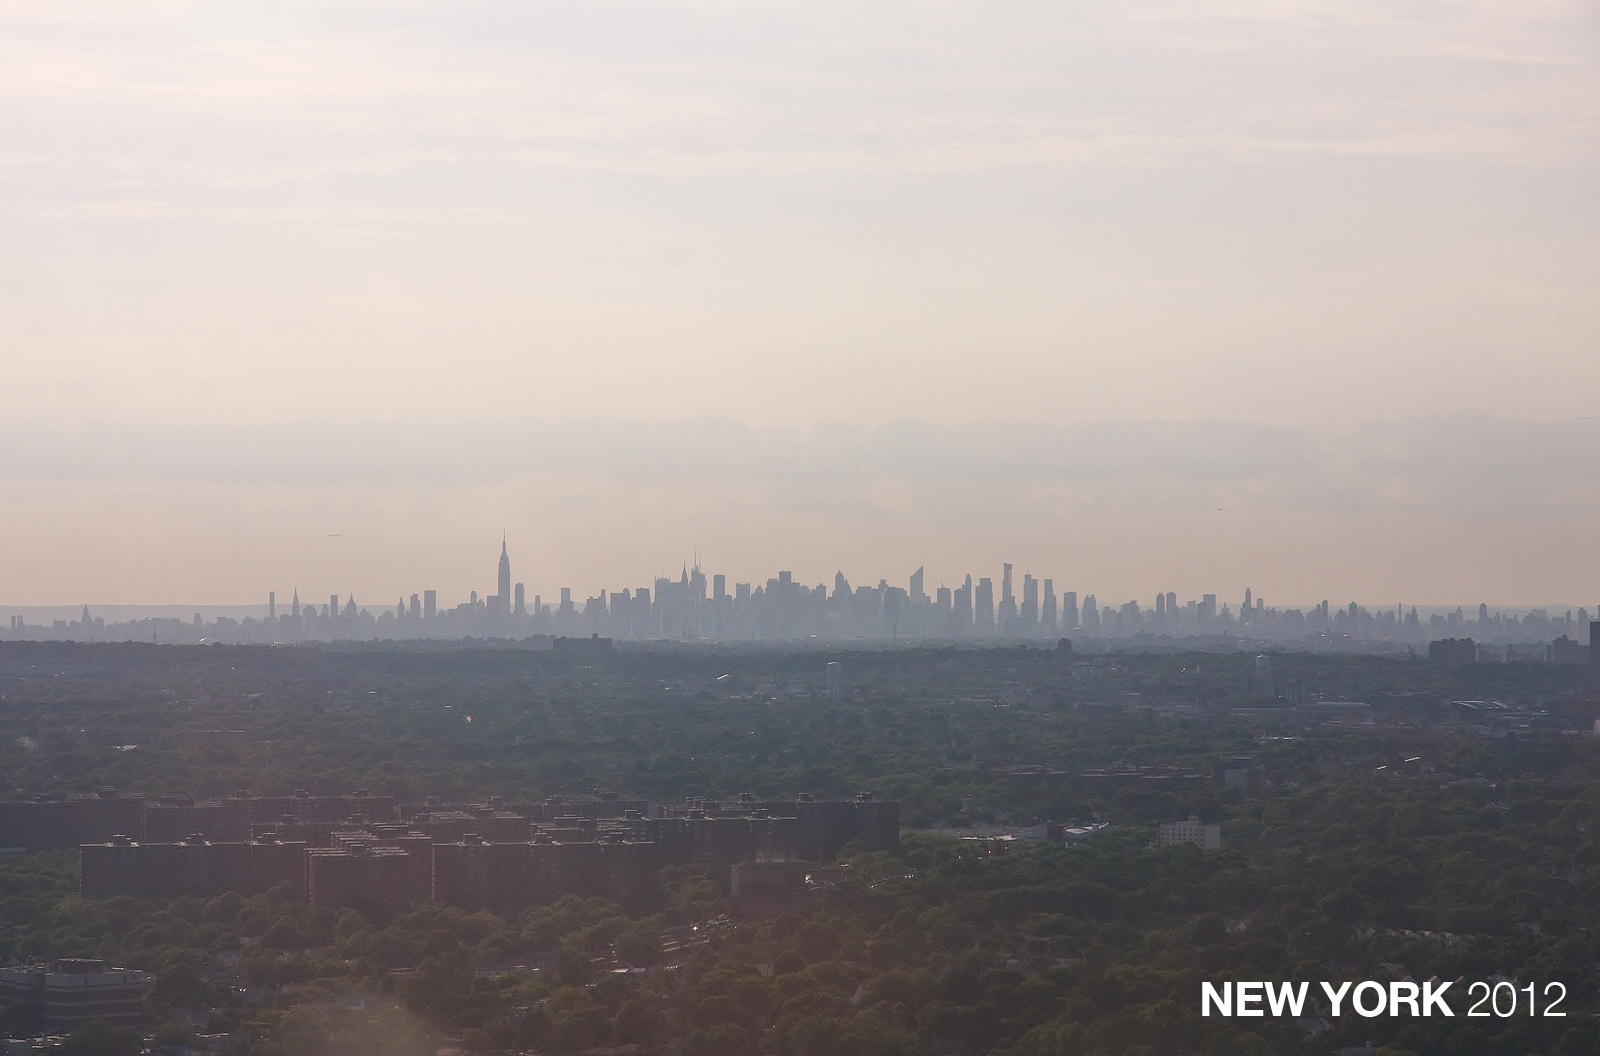 New York City Skyline in 2012